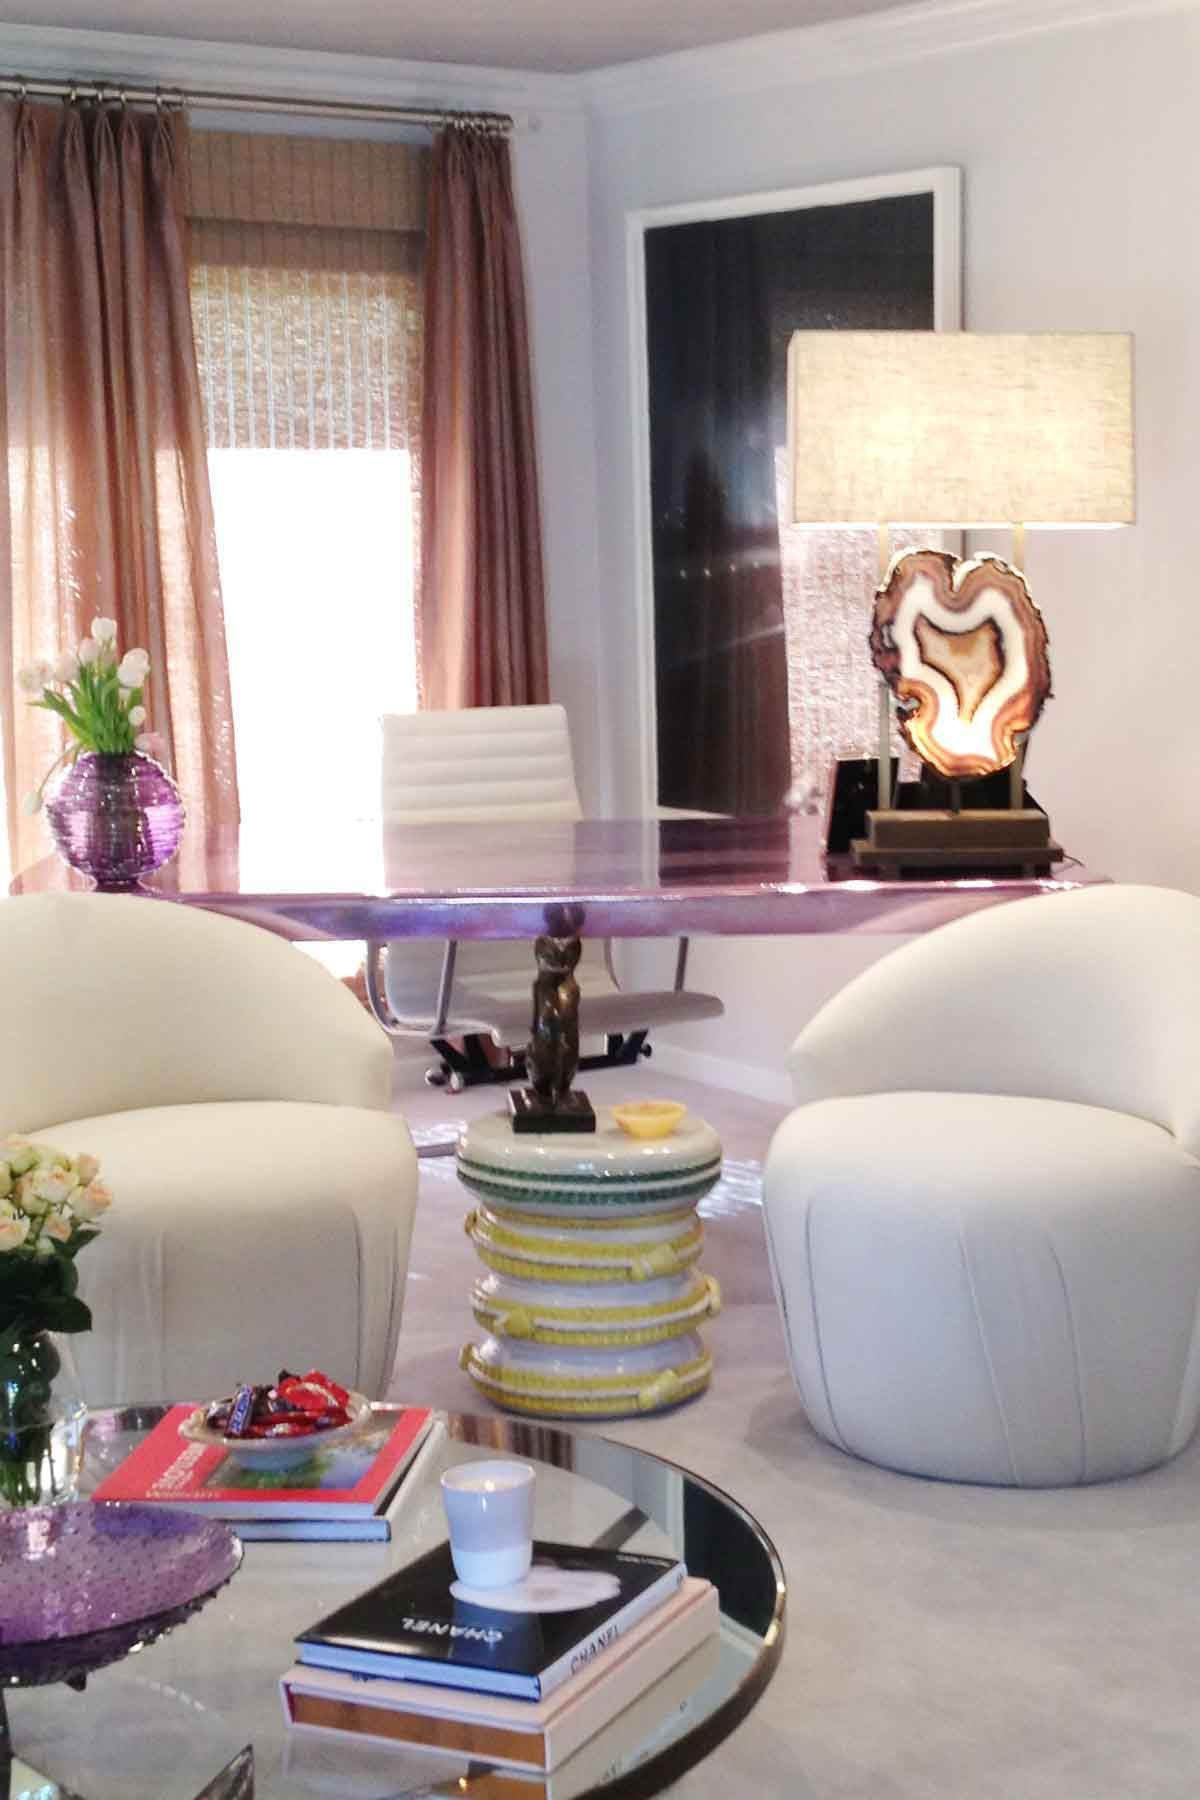 luxury living room ideas lavender and purple colors with